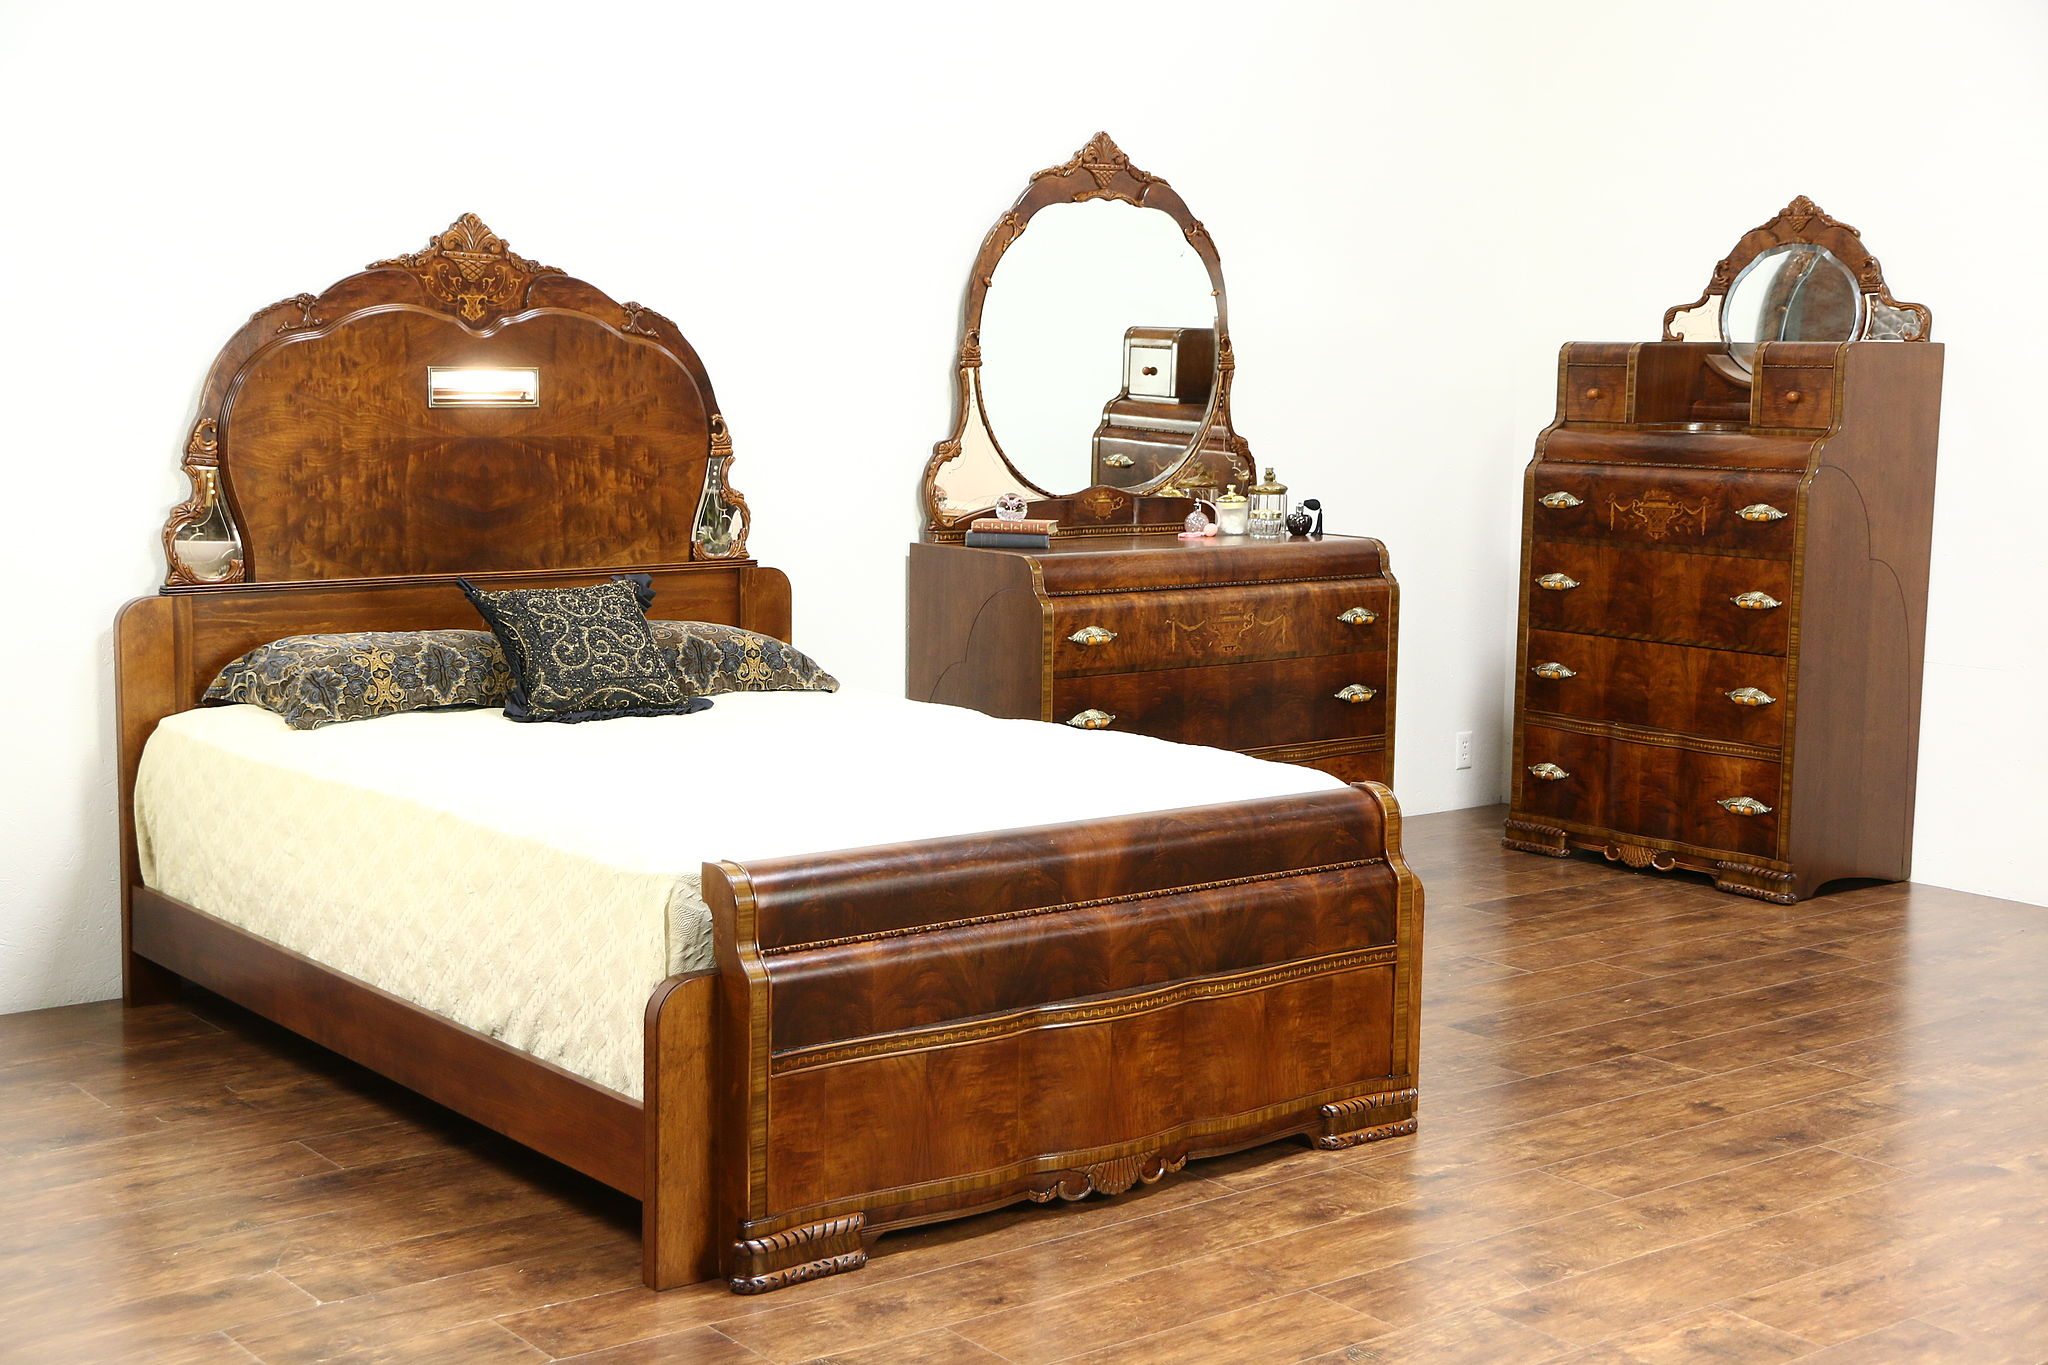 Sold Art Deco Waterfall Design 1935 Vintage 3 Pc Bedroom Set Queen Size Bed Harp Gallery